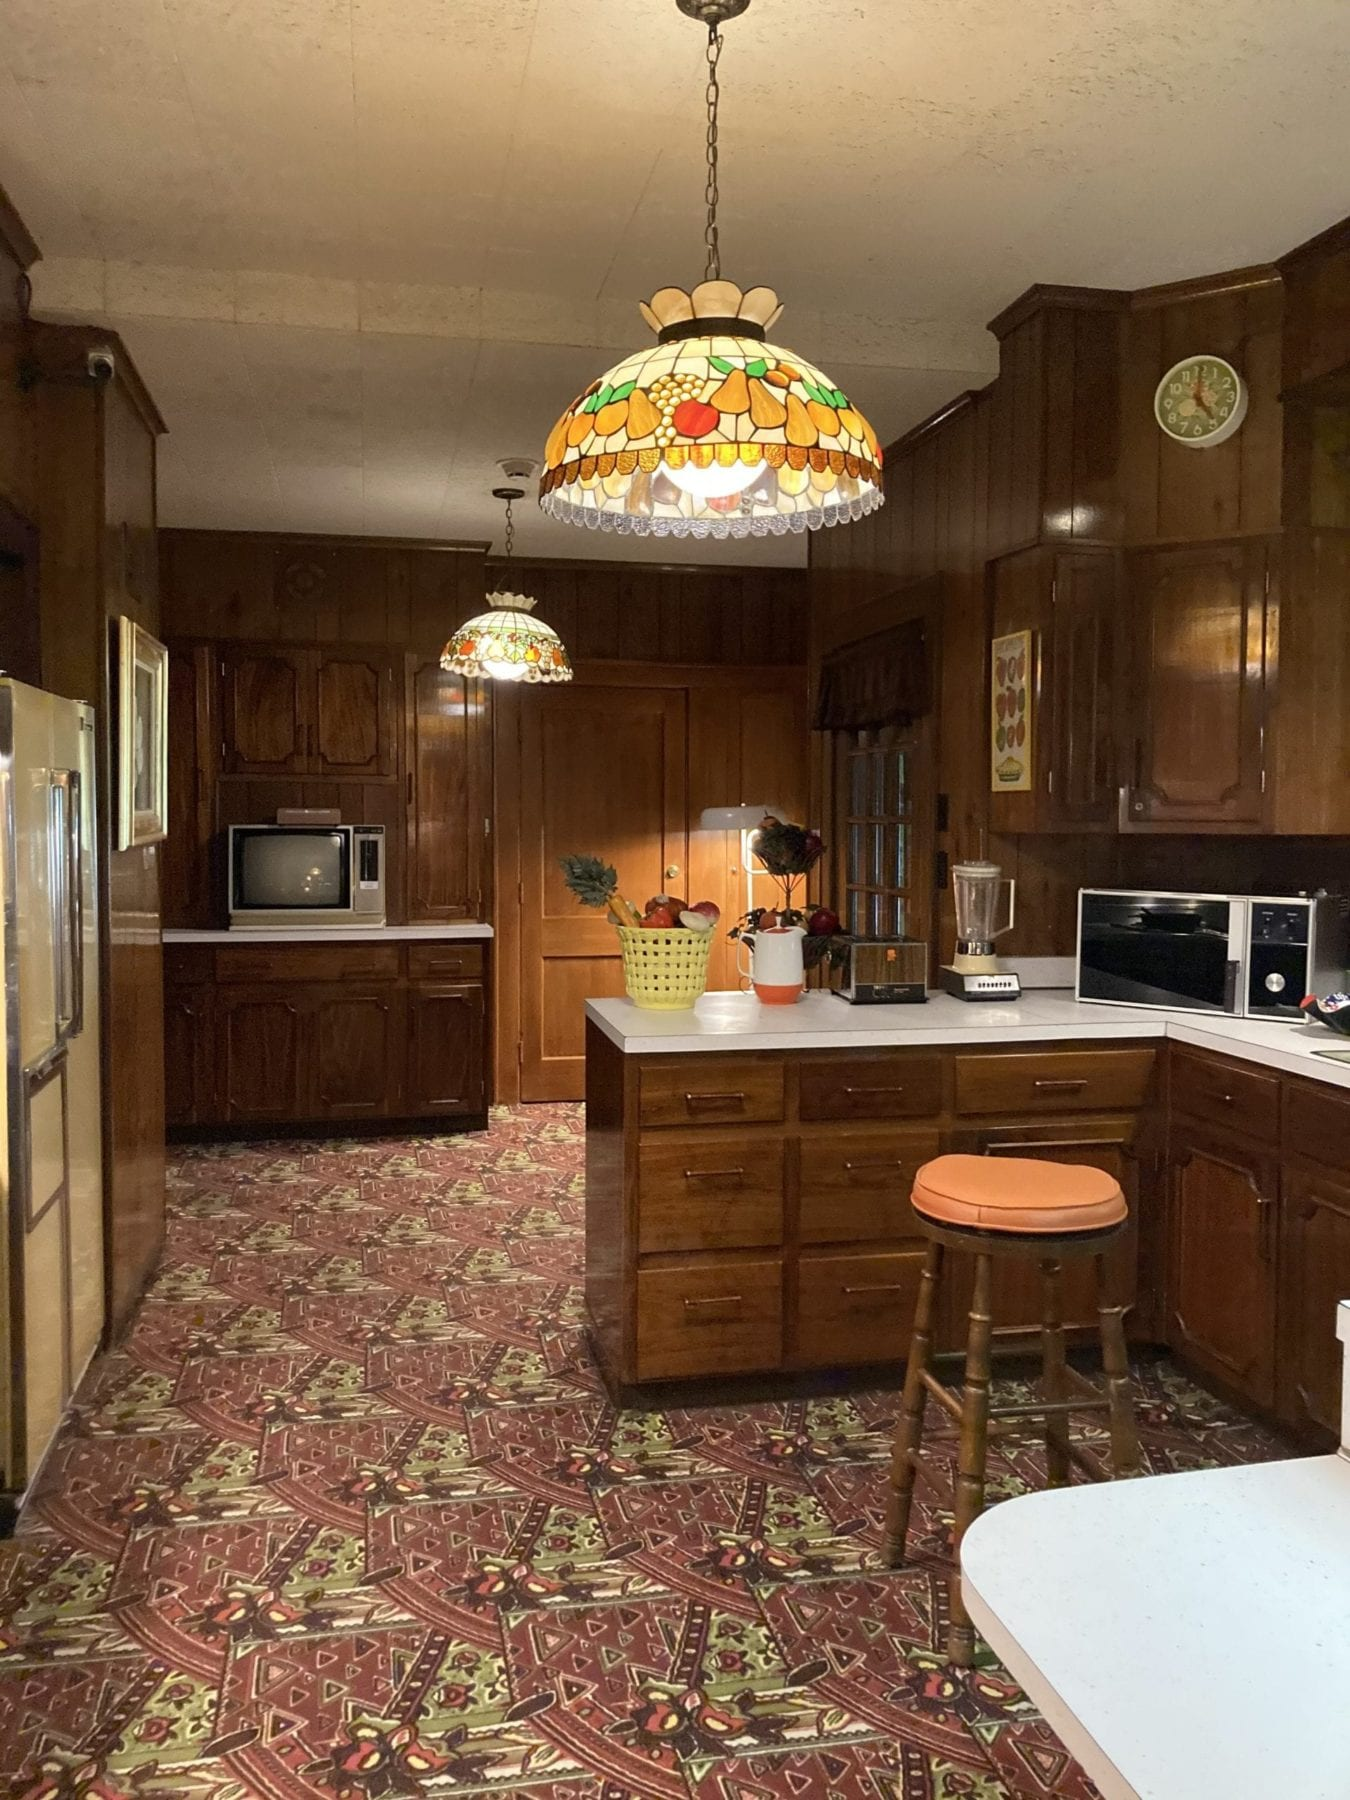 Kitchen at Graceland